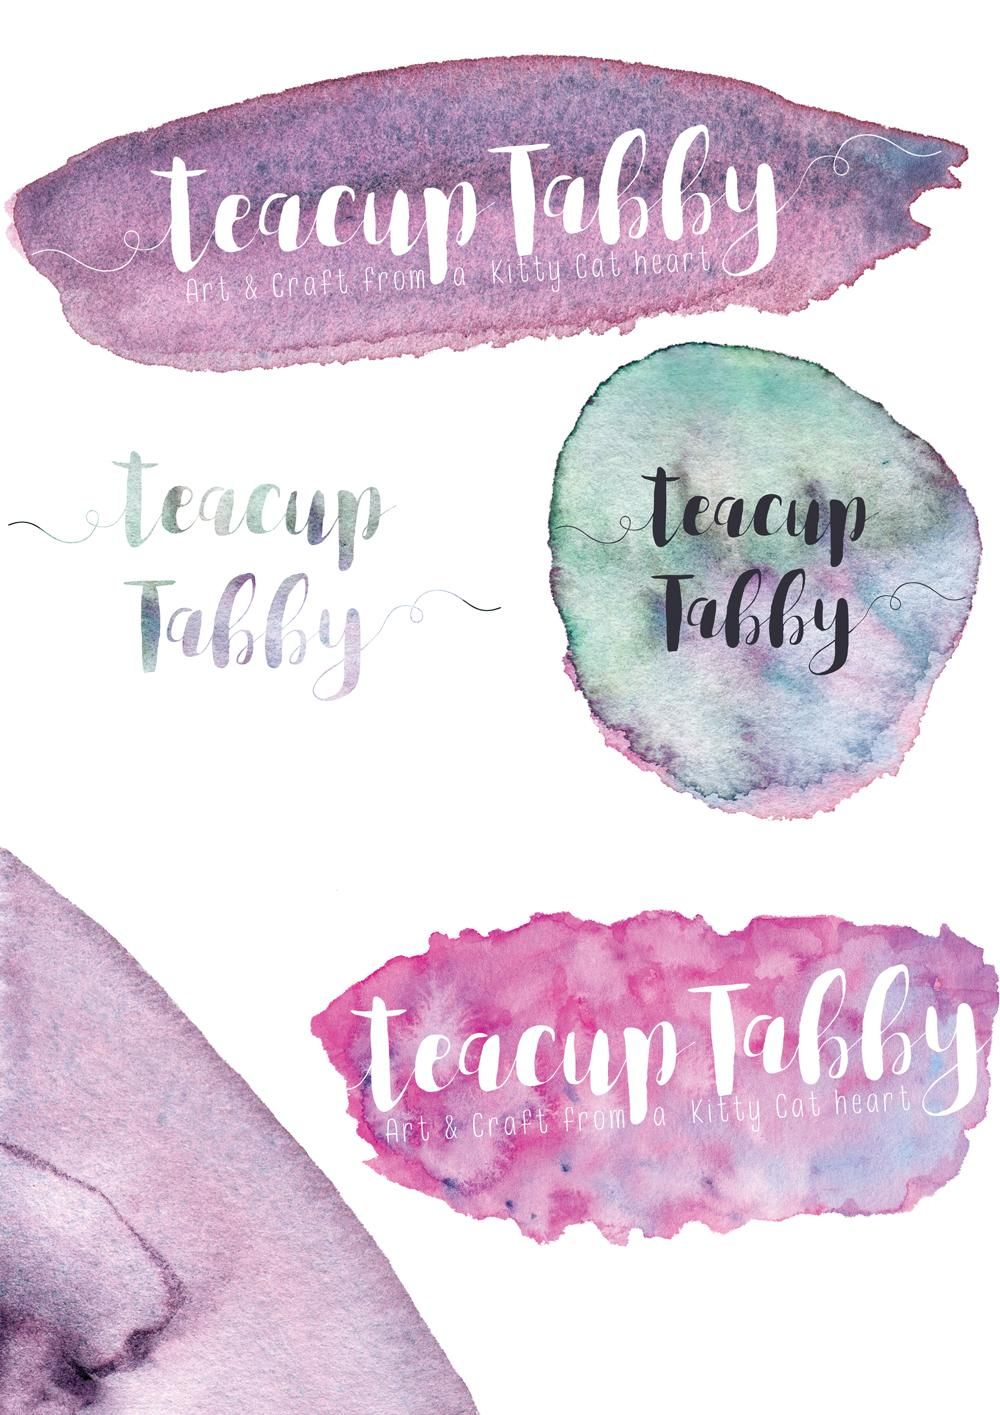 Watercolour Textures for use in branding - image 4 - student project